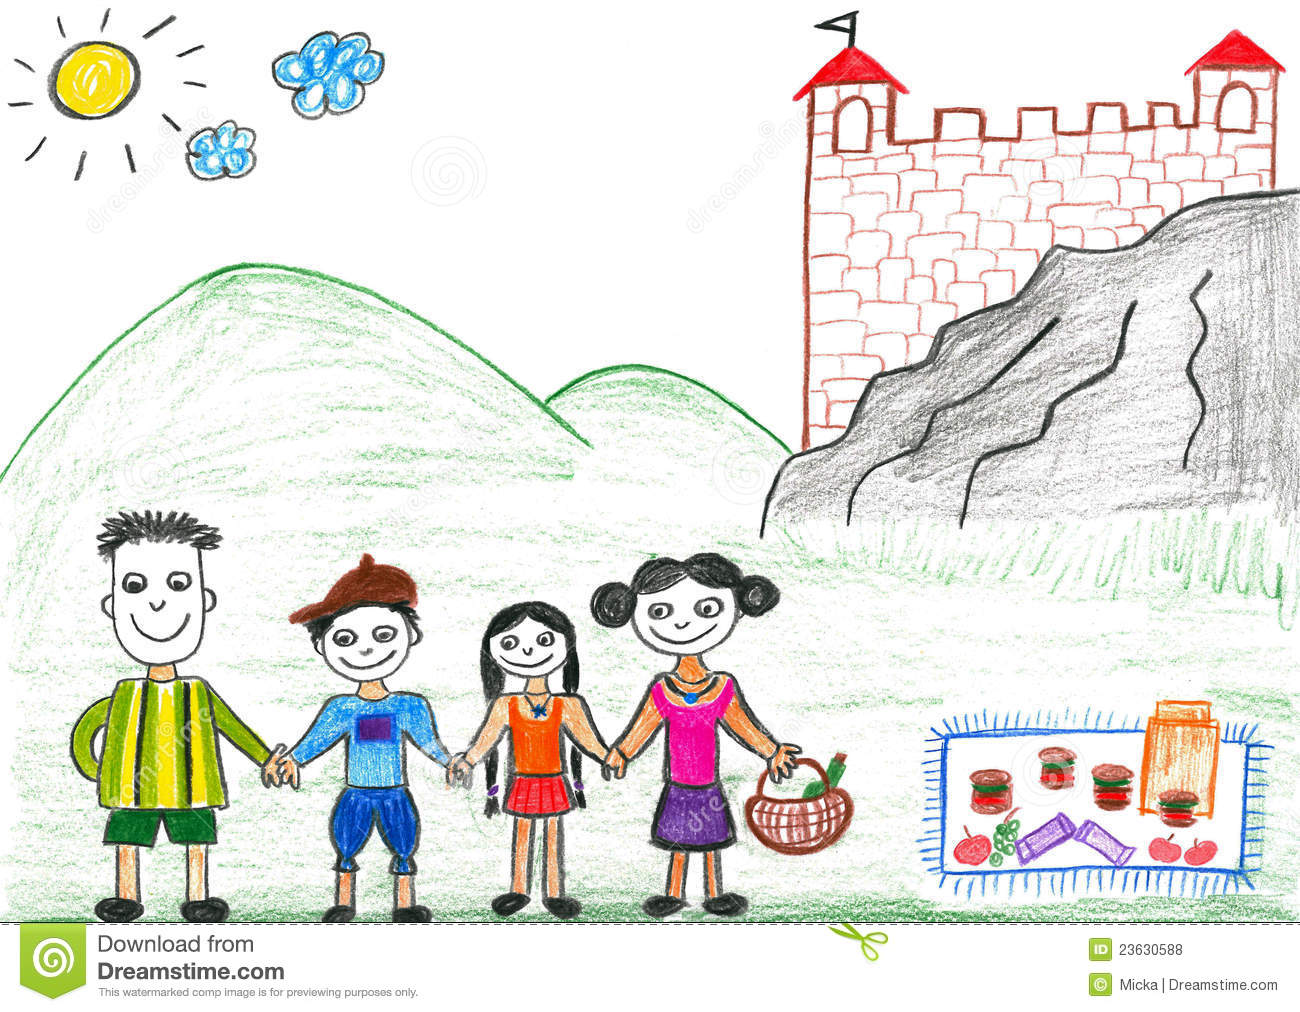 30 with Royalty Free Stock Photos Child S Drawing Happy Family Picnic Under Old Cast Image23630588 on 2UMDHUZ5C4N as well Gardens Parks furthermore Nkongsamba furthermore Channelling Daido Moriyama Provoke moreover 17287 19331.